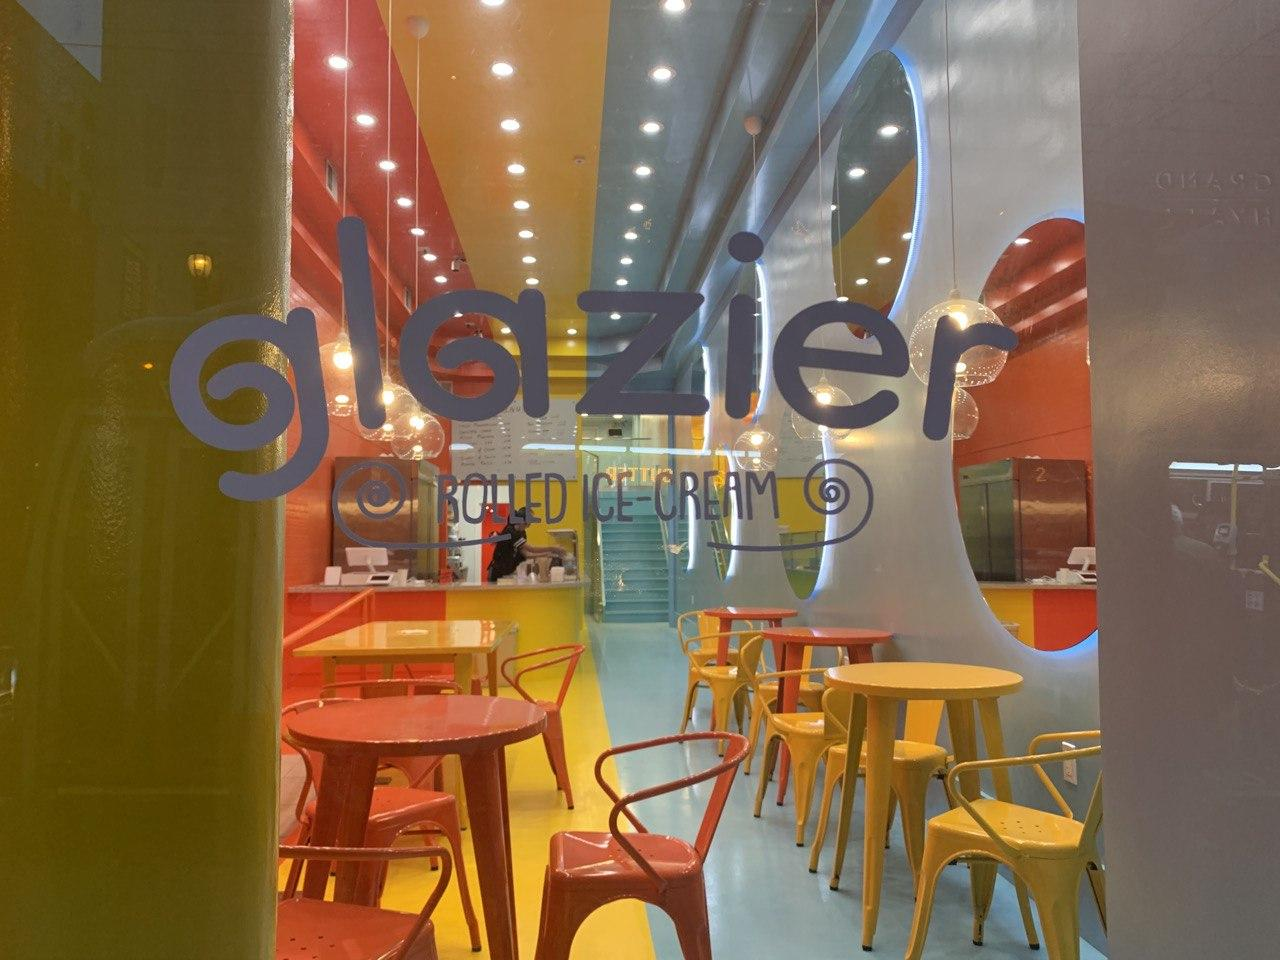 View of Glazier Rolled Ice Cream Shop in San Francisco